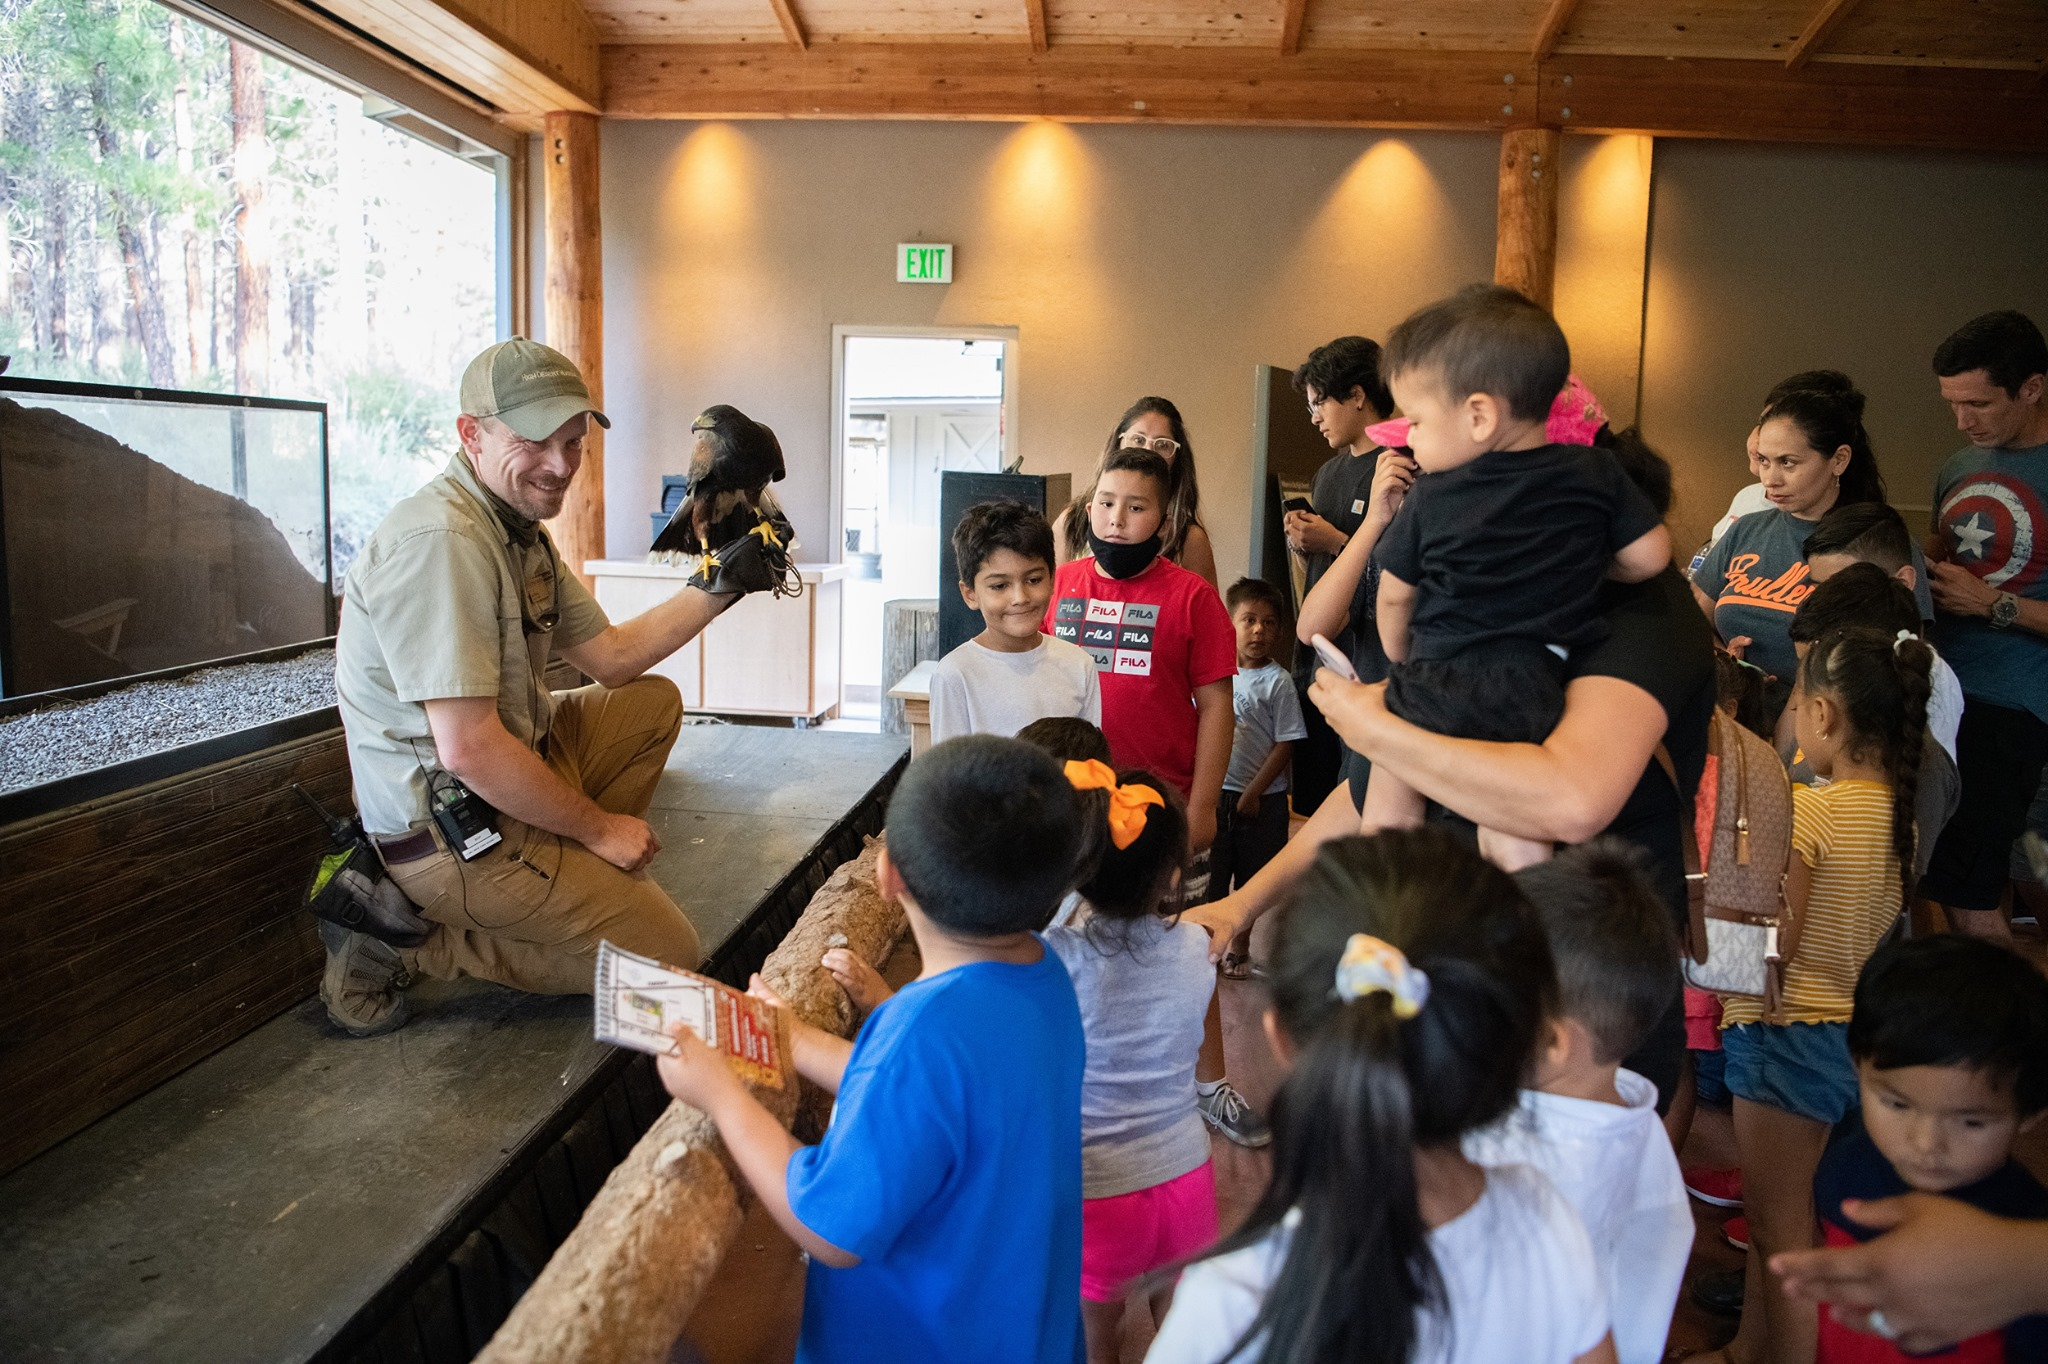 An image of a presentation at The High Desert Museum, attended by both kids and adults - one of the things to do in Bend, Oregon